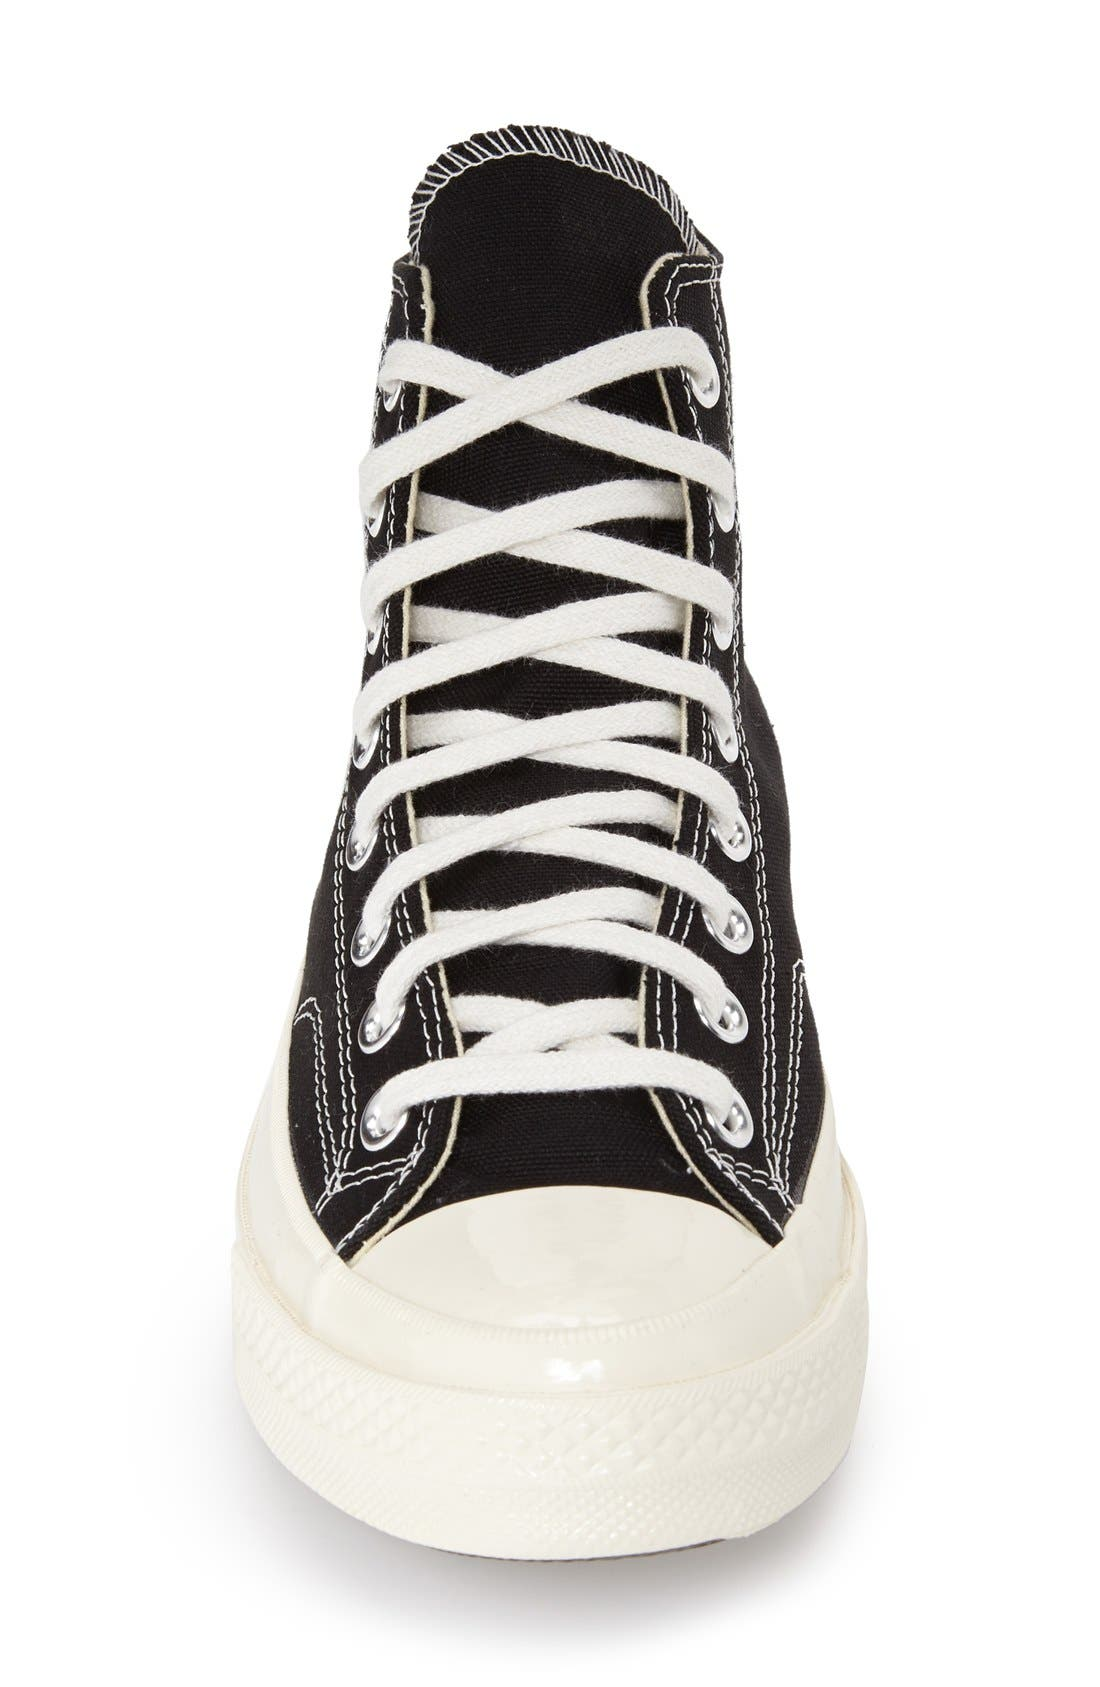 COMME DES GARÇONS, PLAY x Converse Chuck Taylor<sup>®</sup> Hidden Heart High Top Sneaker, Alternate thumbnail 3, color, BLACK CANVAS